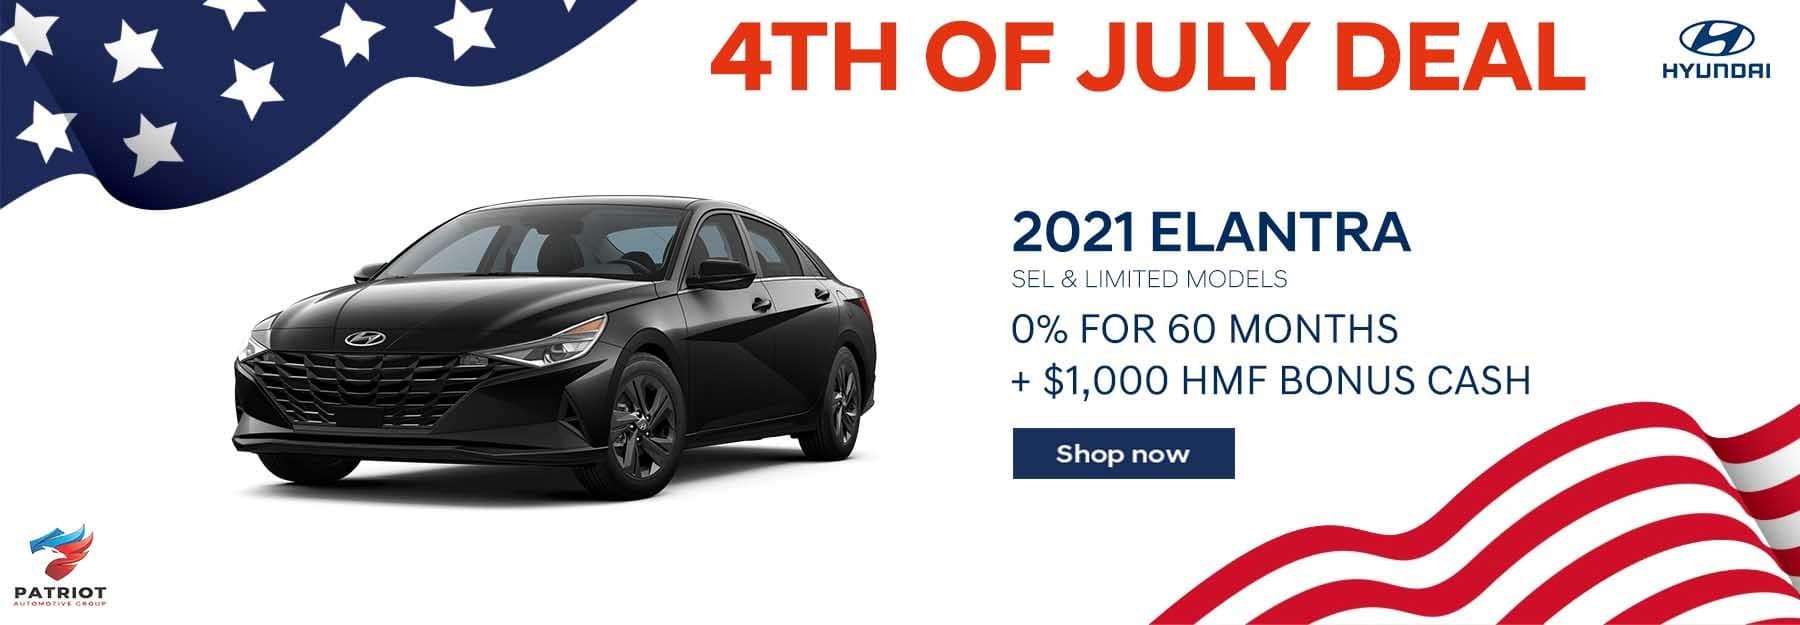 4th of July Elantra Special Deal